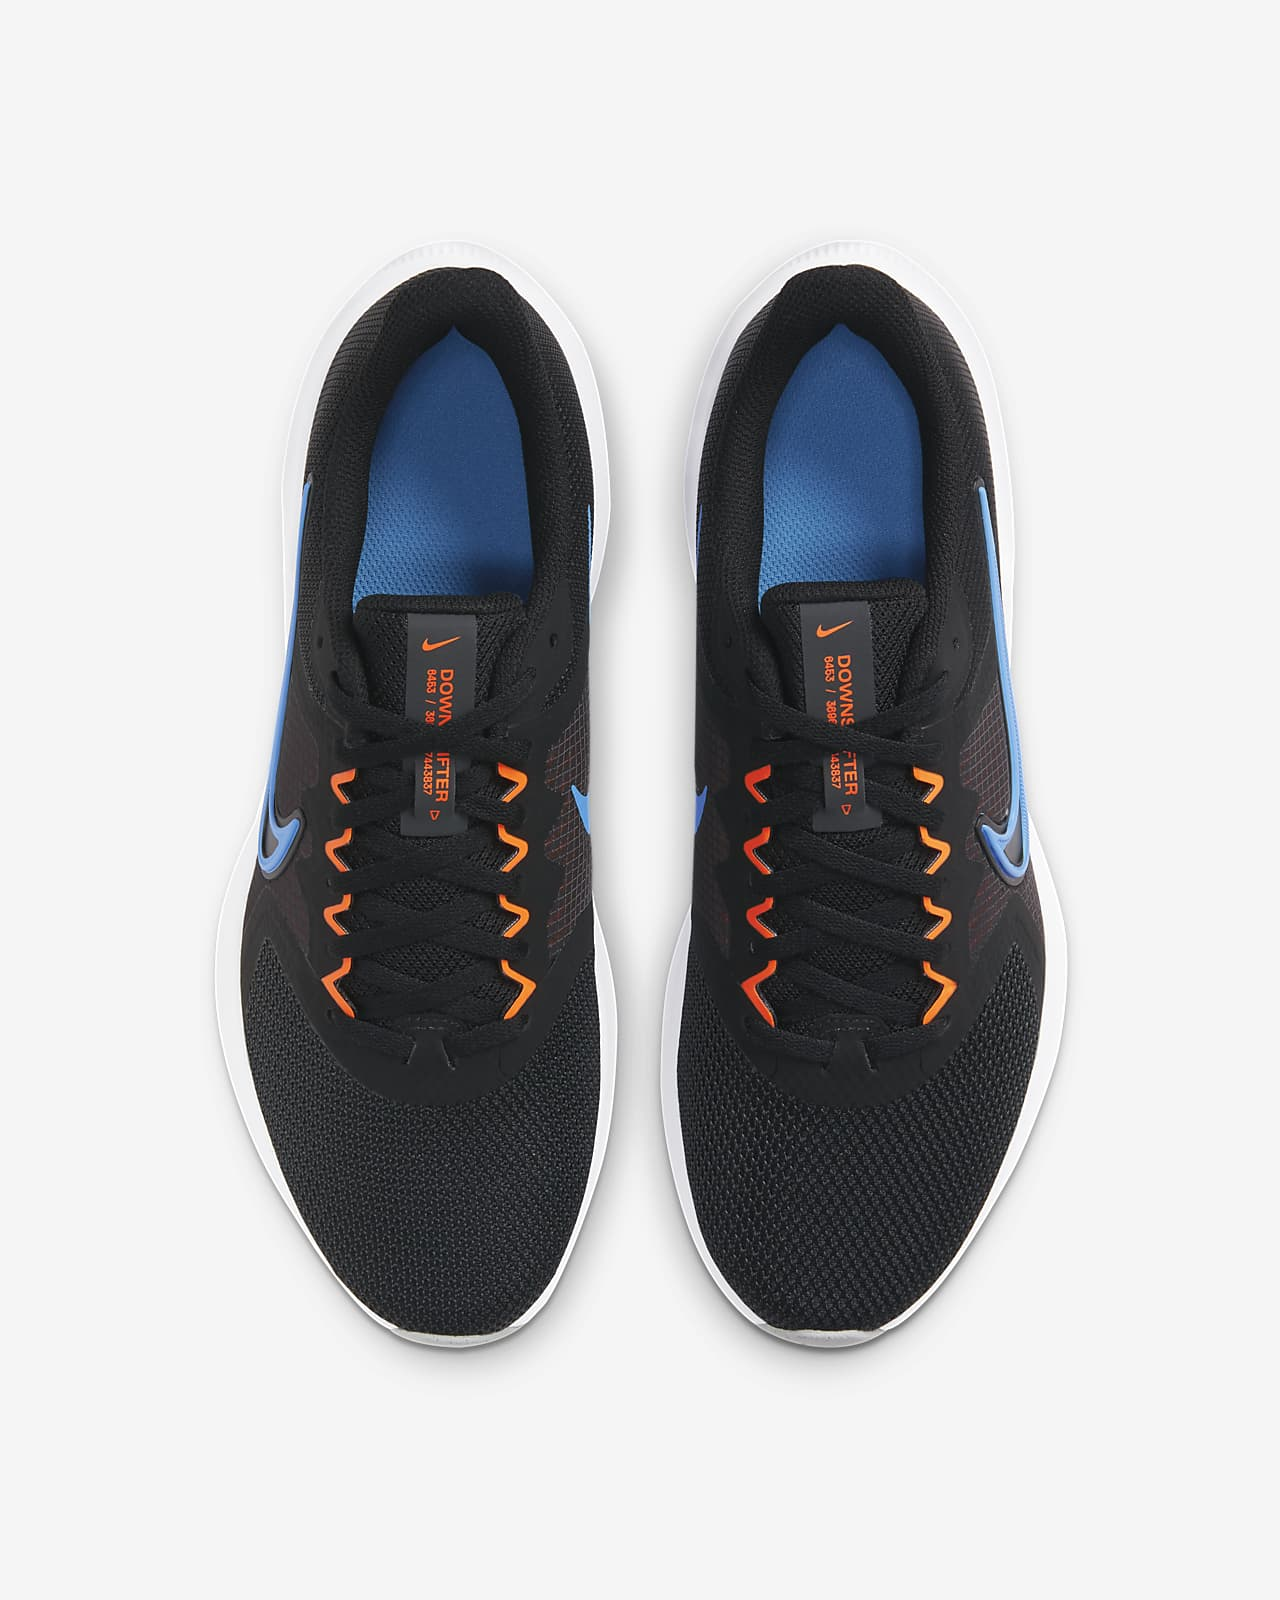 Chaussures de running Nike Downshifter 11 pour Homme. Nike FR